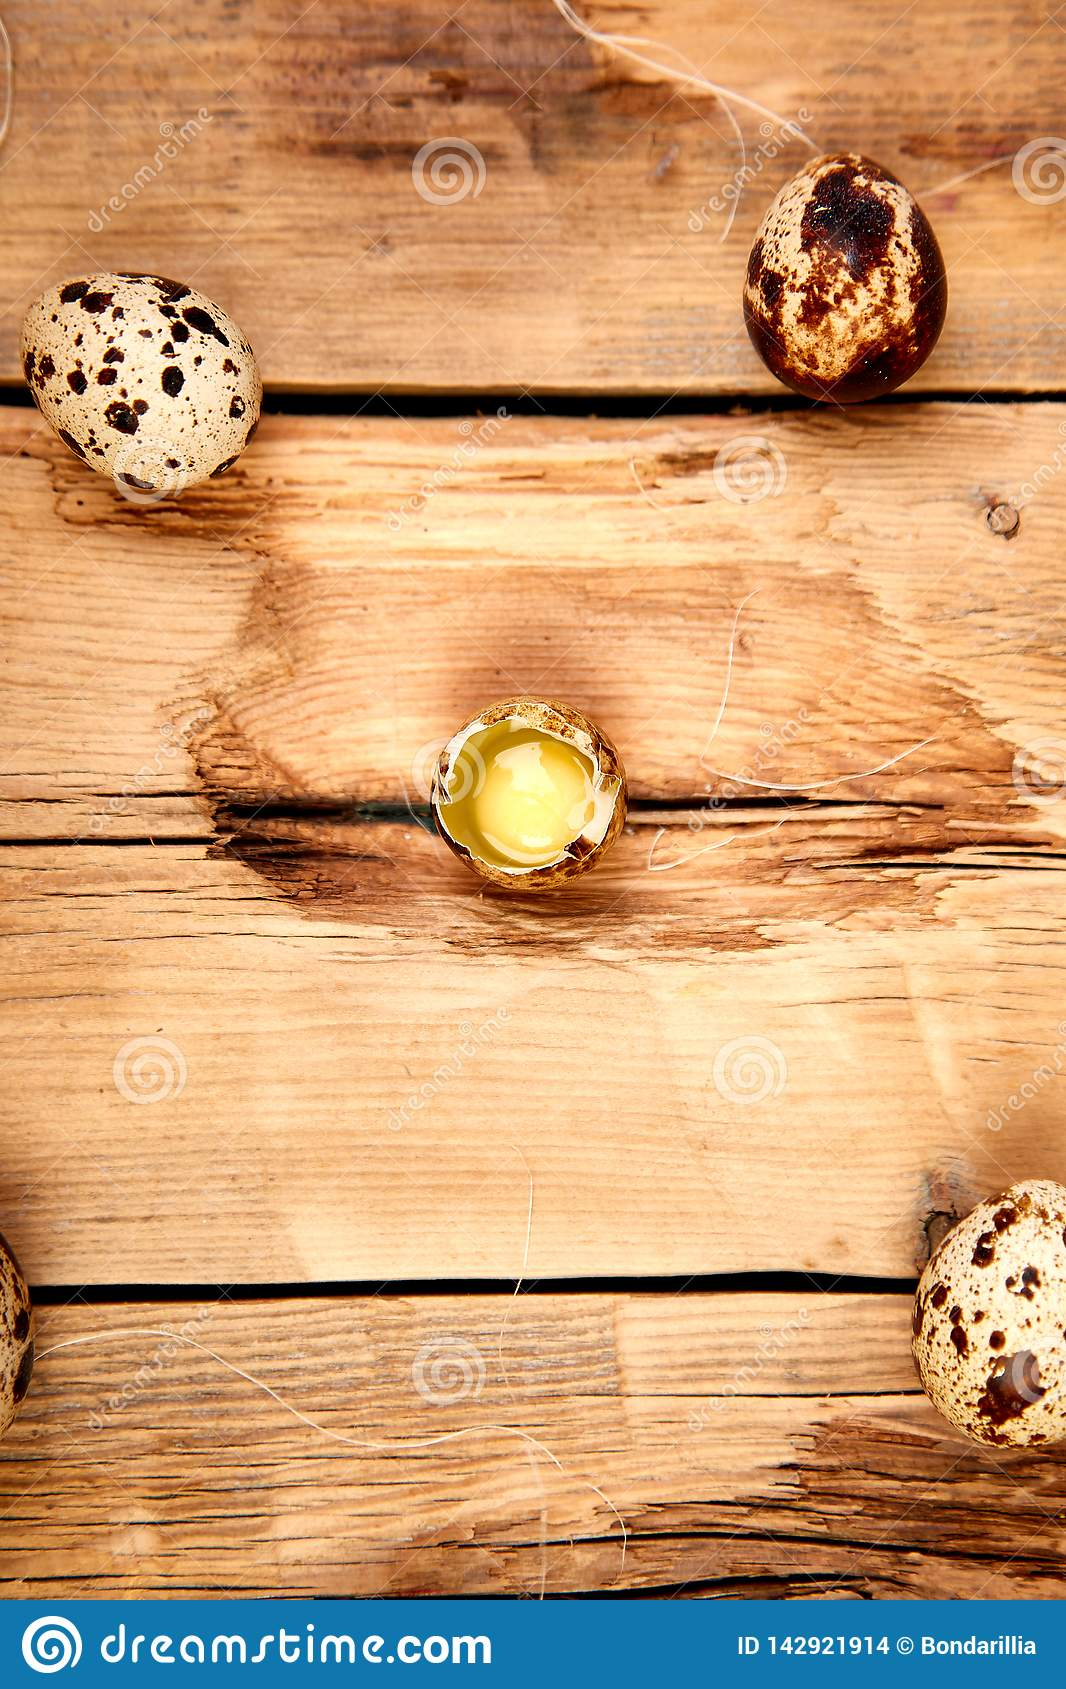 Quail eggs on wooden background. Happy easter